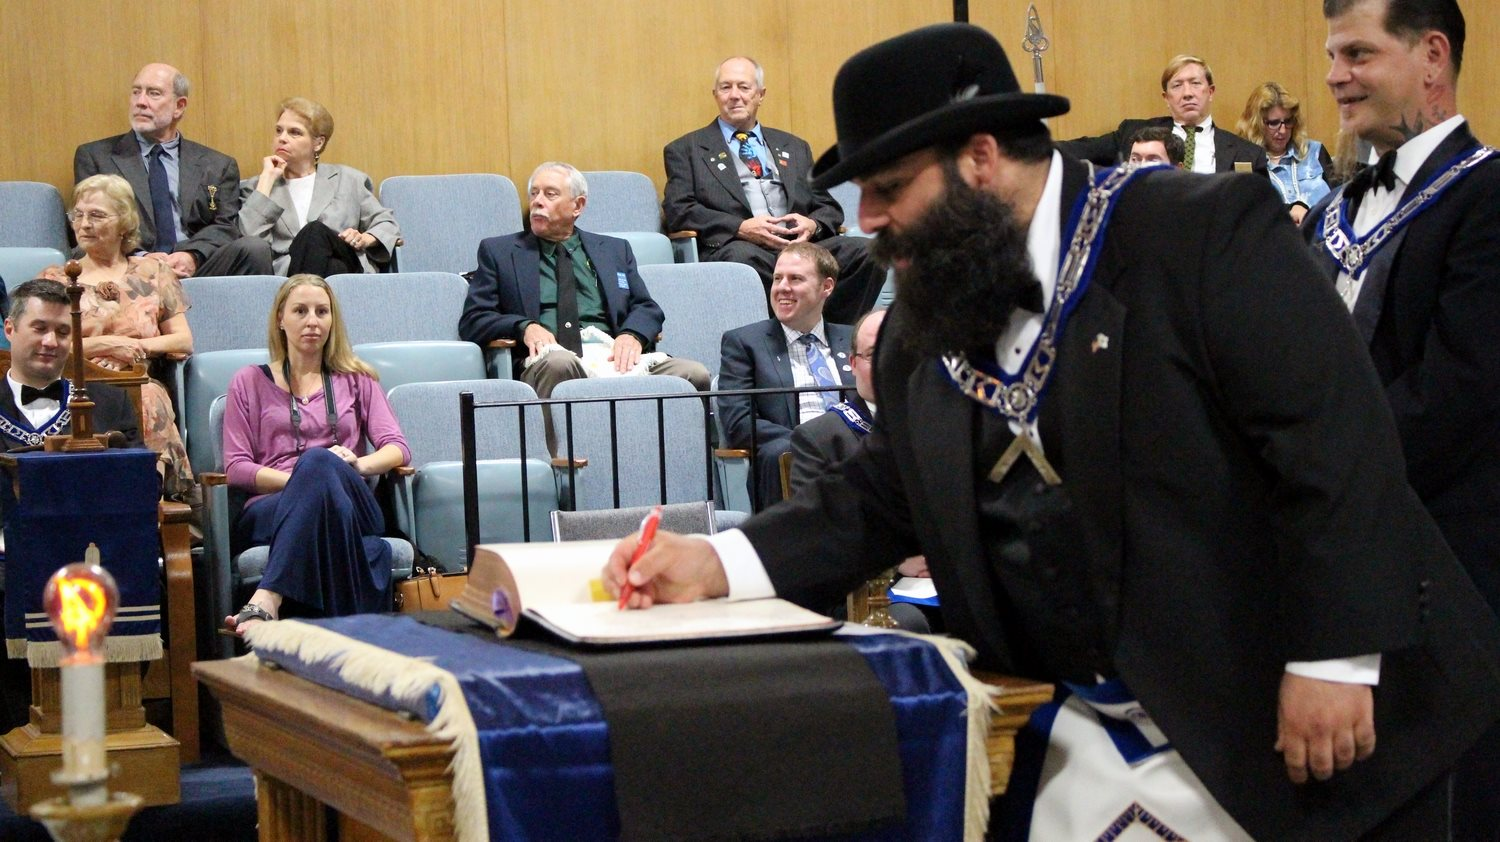 2016-Installation-WM-Signing-The-Bible